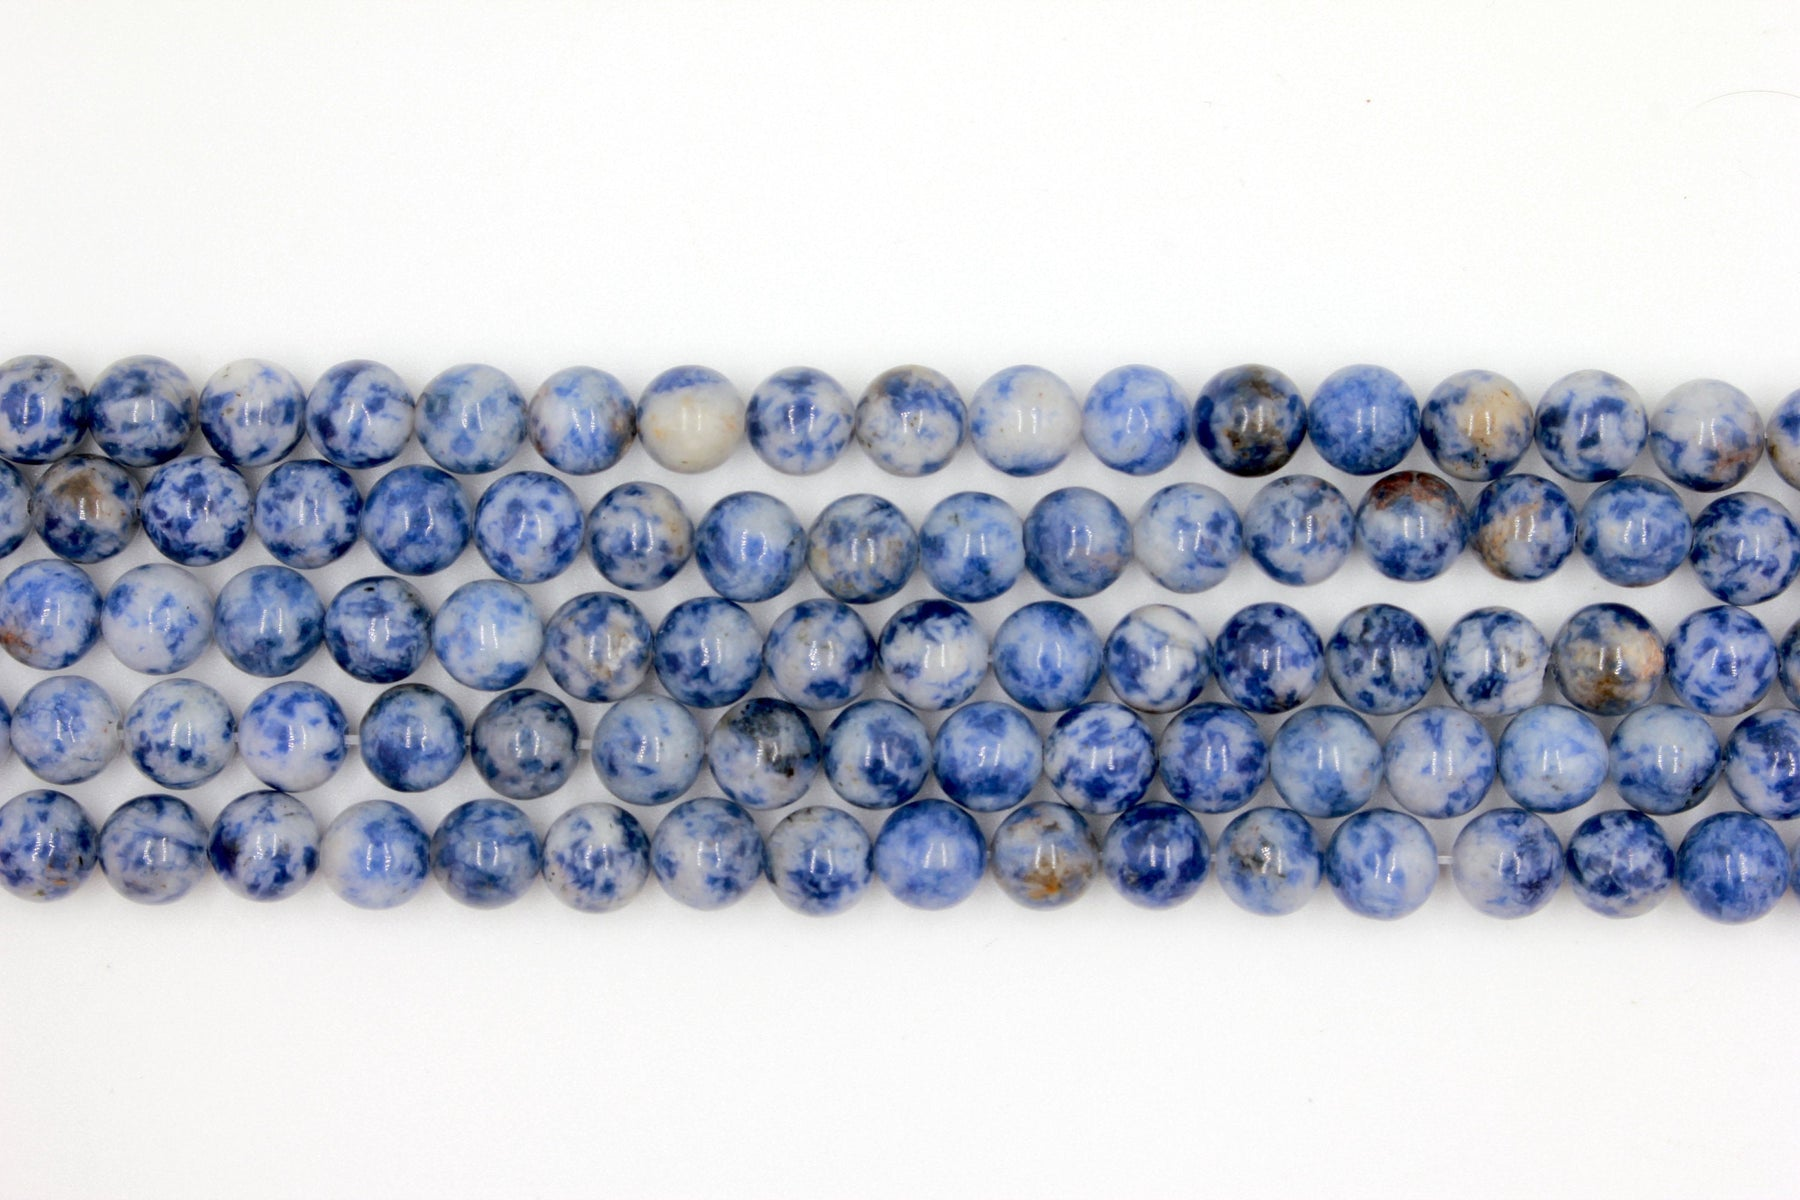 8mm sodalite gemstone beads